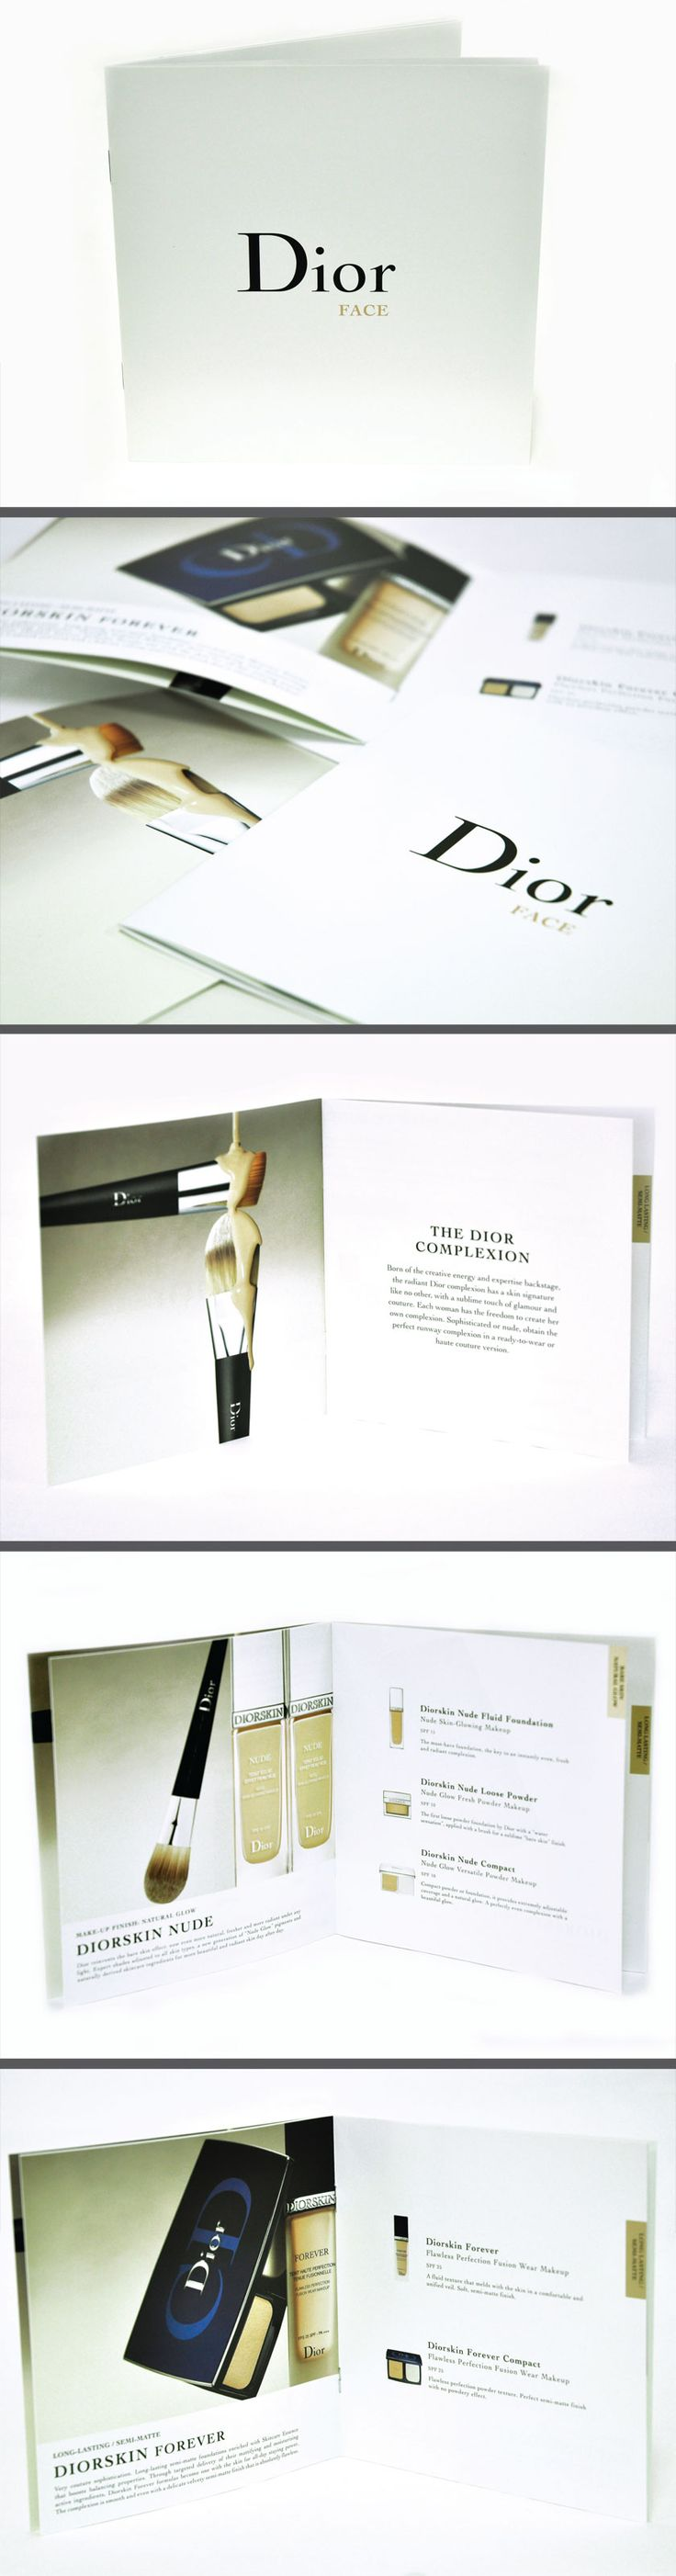 mini design Dior face brochure, your small business graphic designer sydney